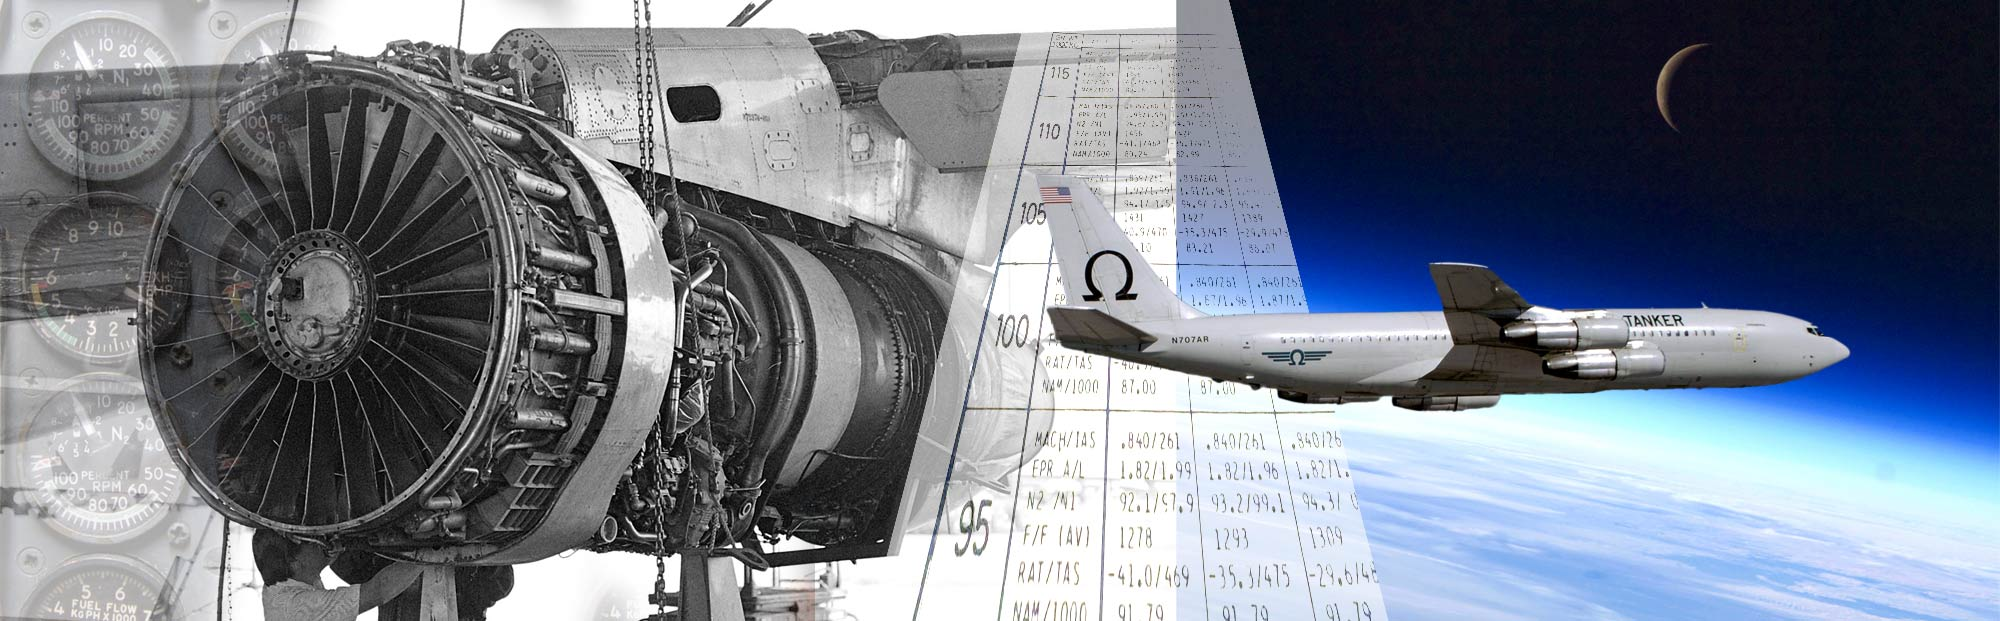 JT3D engine and B707 system information needed